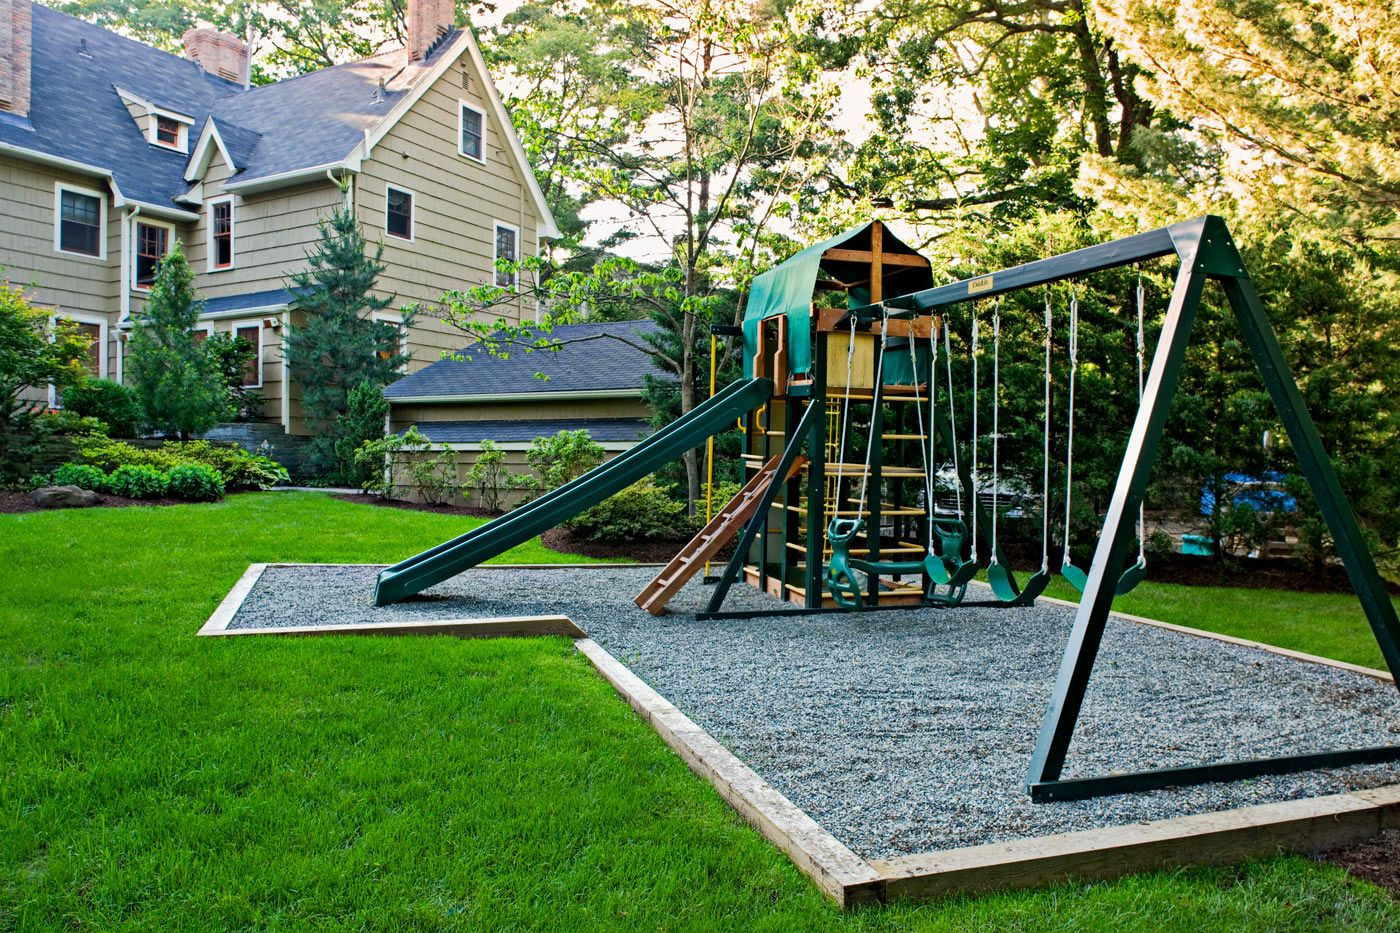 Backyard Playground Landscape Design Ideas - http ...